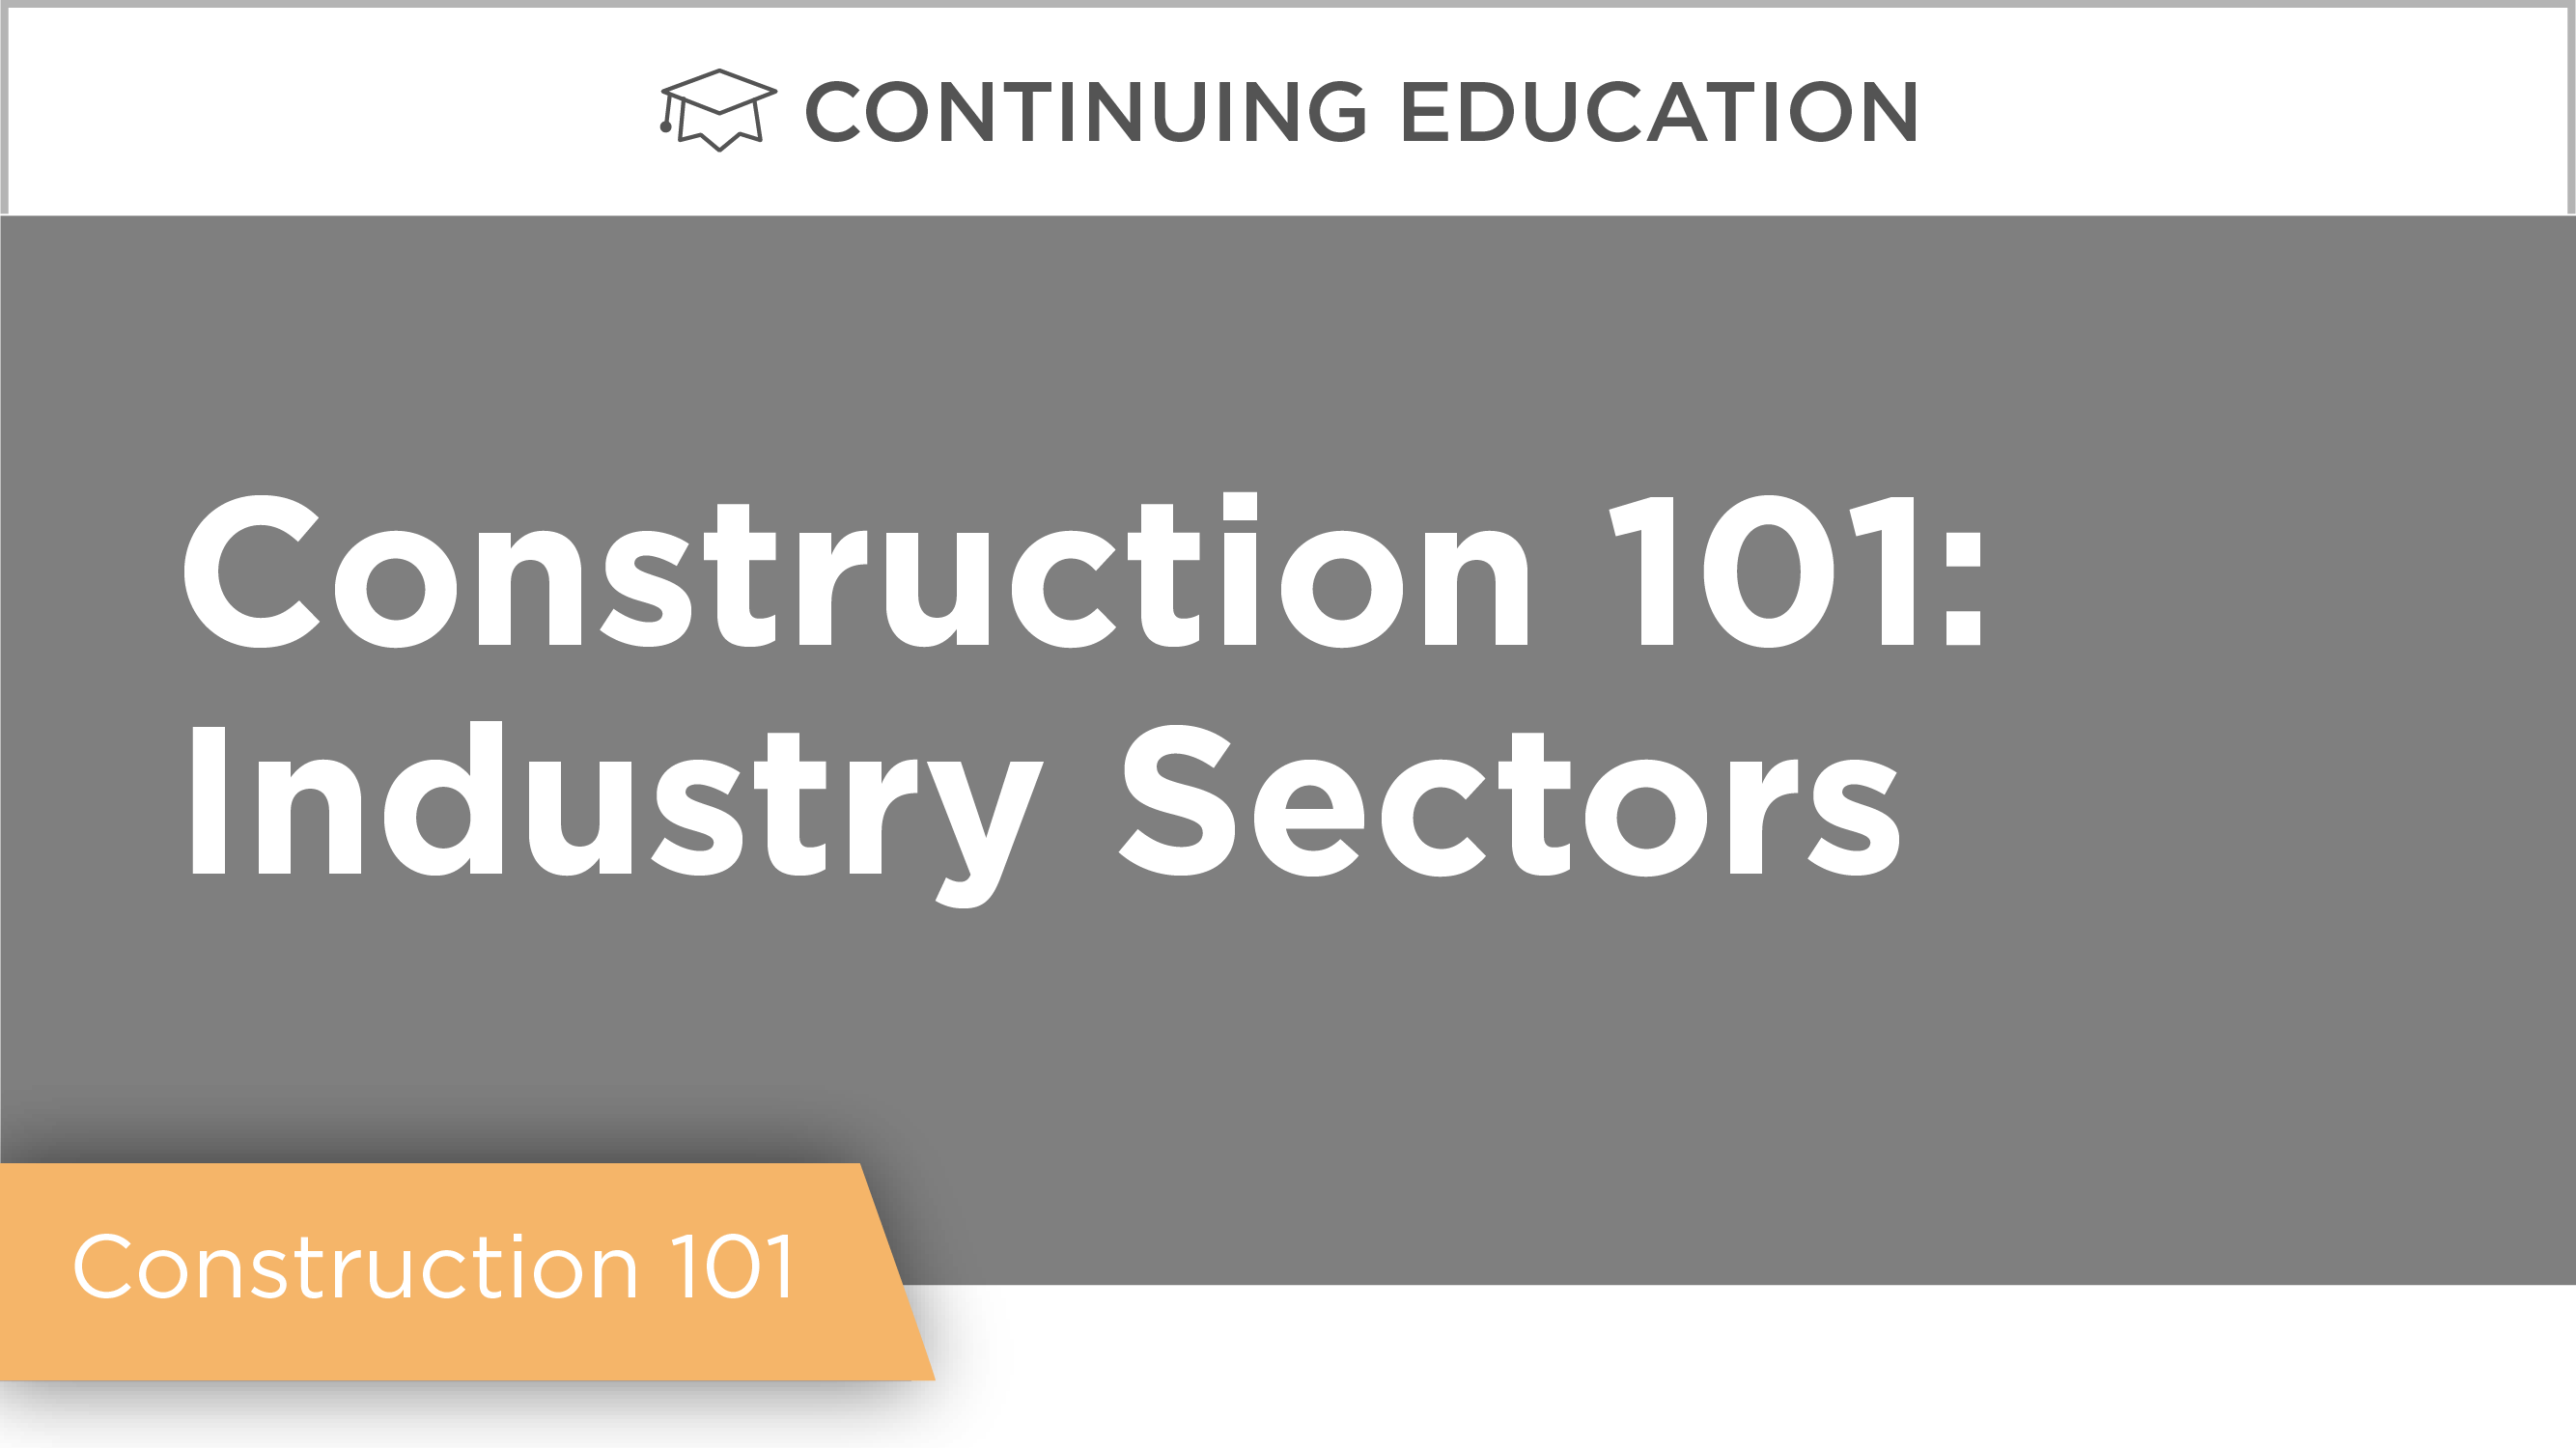 Construction 101: Industry Sectors